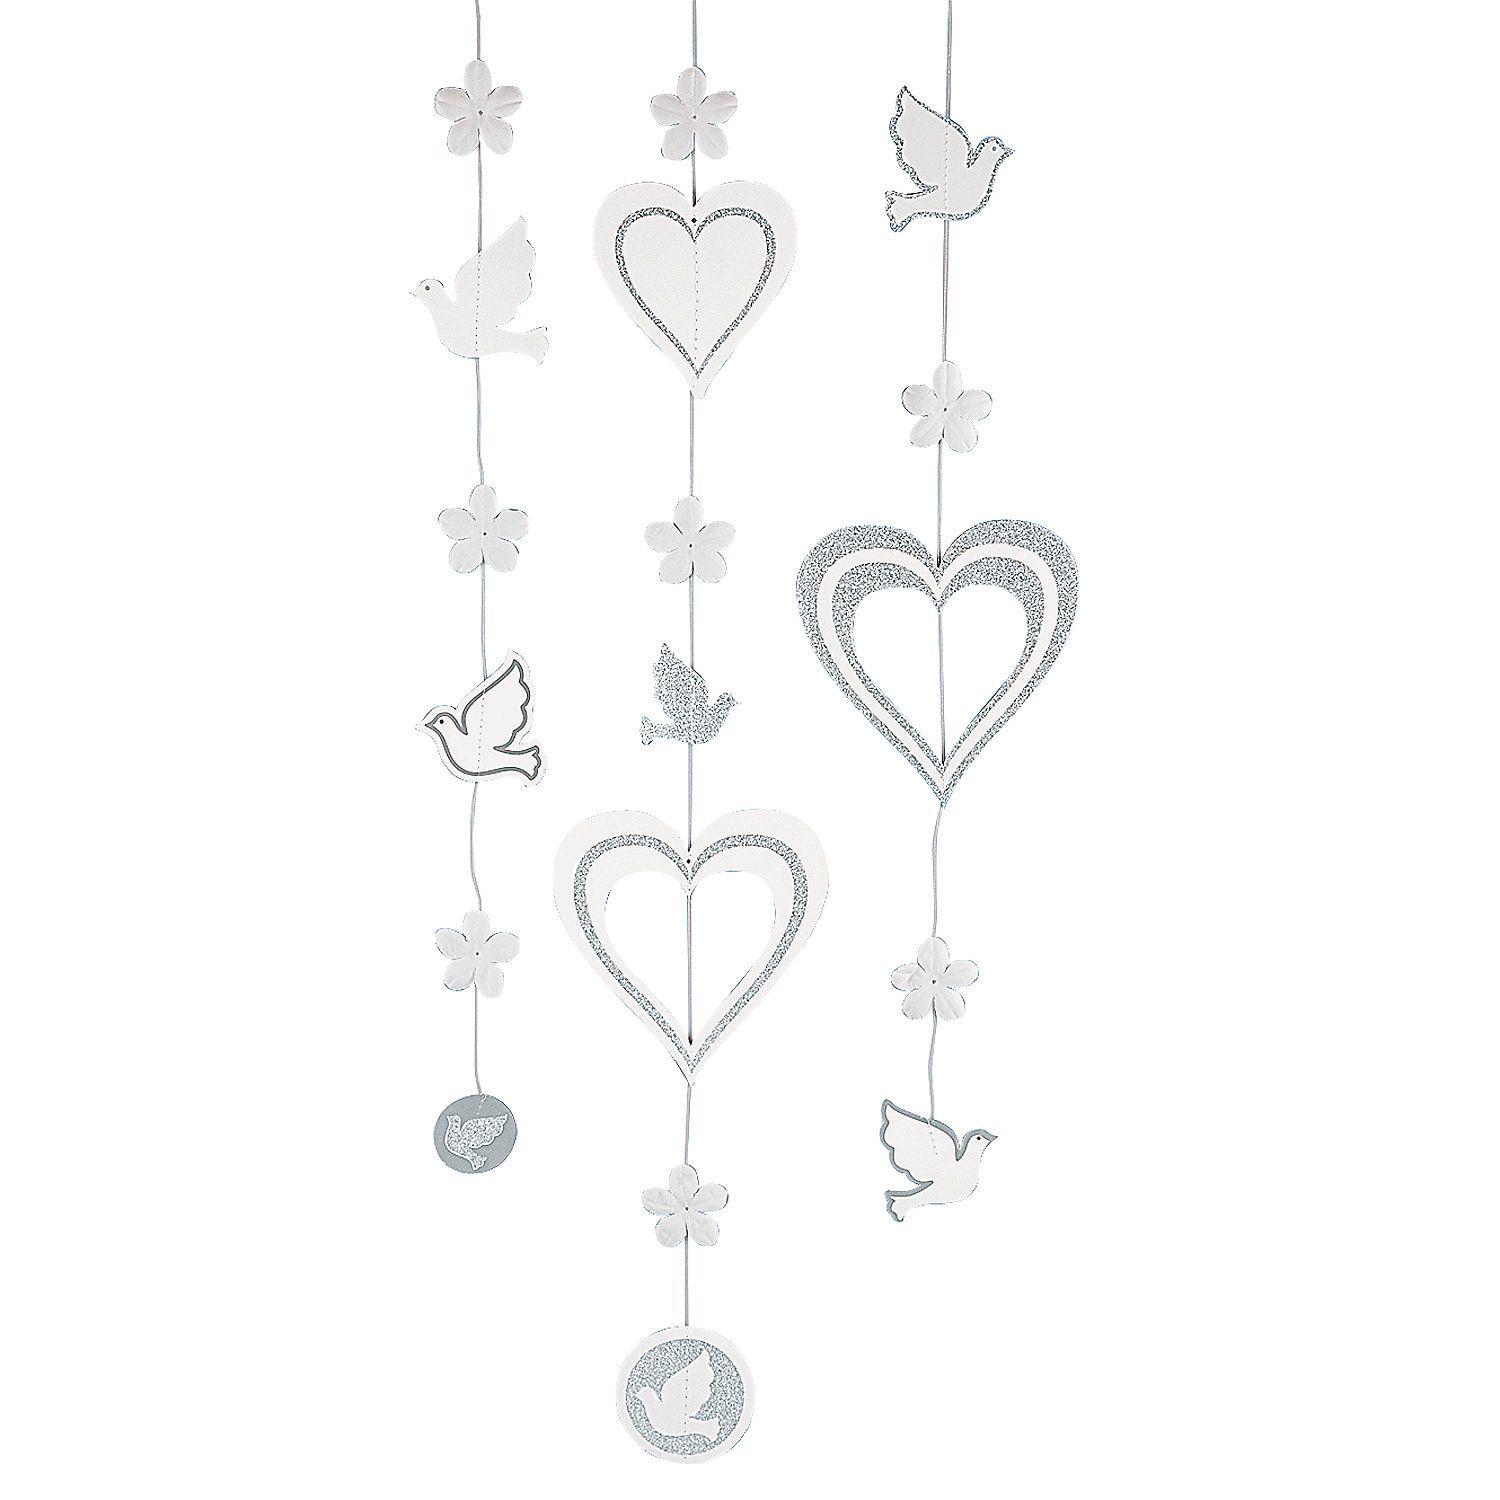 Hanging Wedding Glitter Decorations - $4.49 per set. 5 pcs per set. 3' length. Cardboard & polyester. OrientalTrading.com